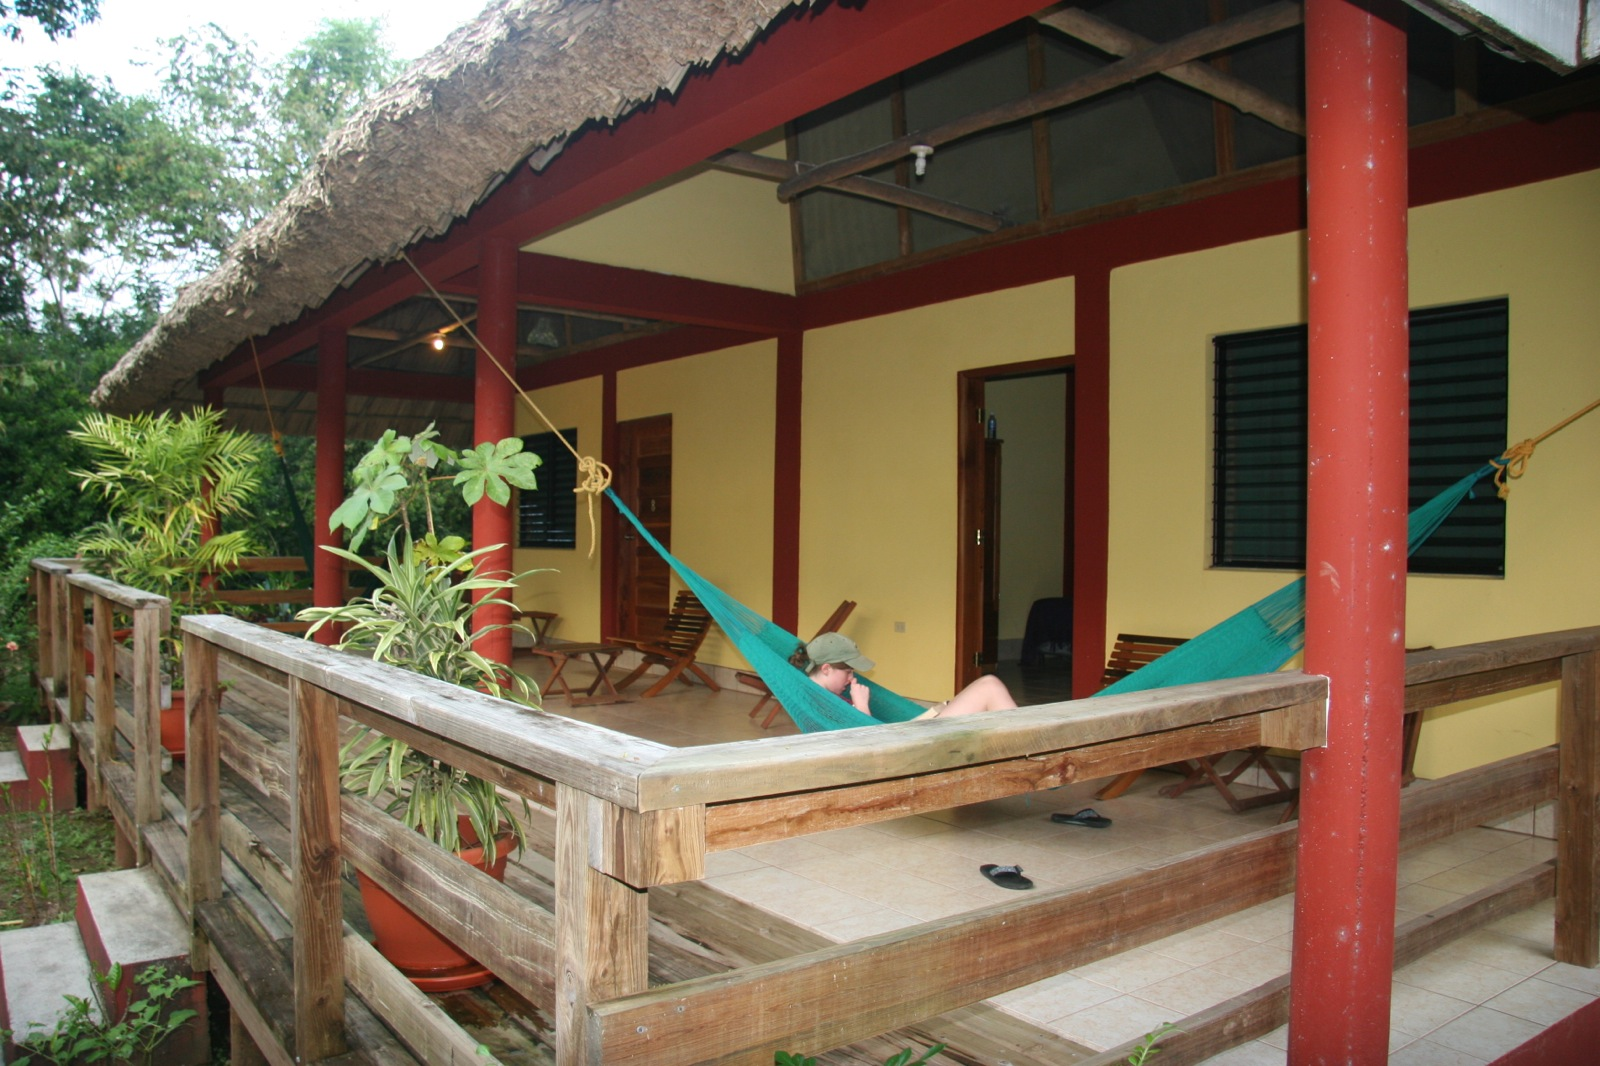 A participant lounges in a blue hammock on the porch of the San Ignacio resort.